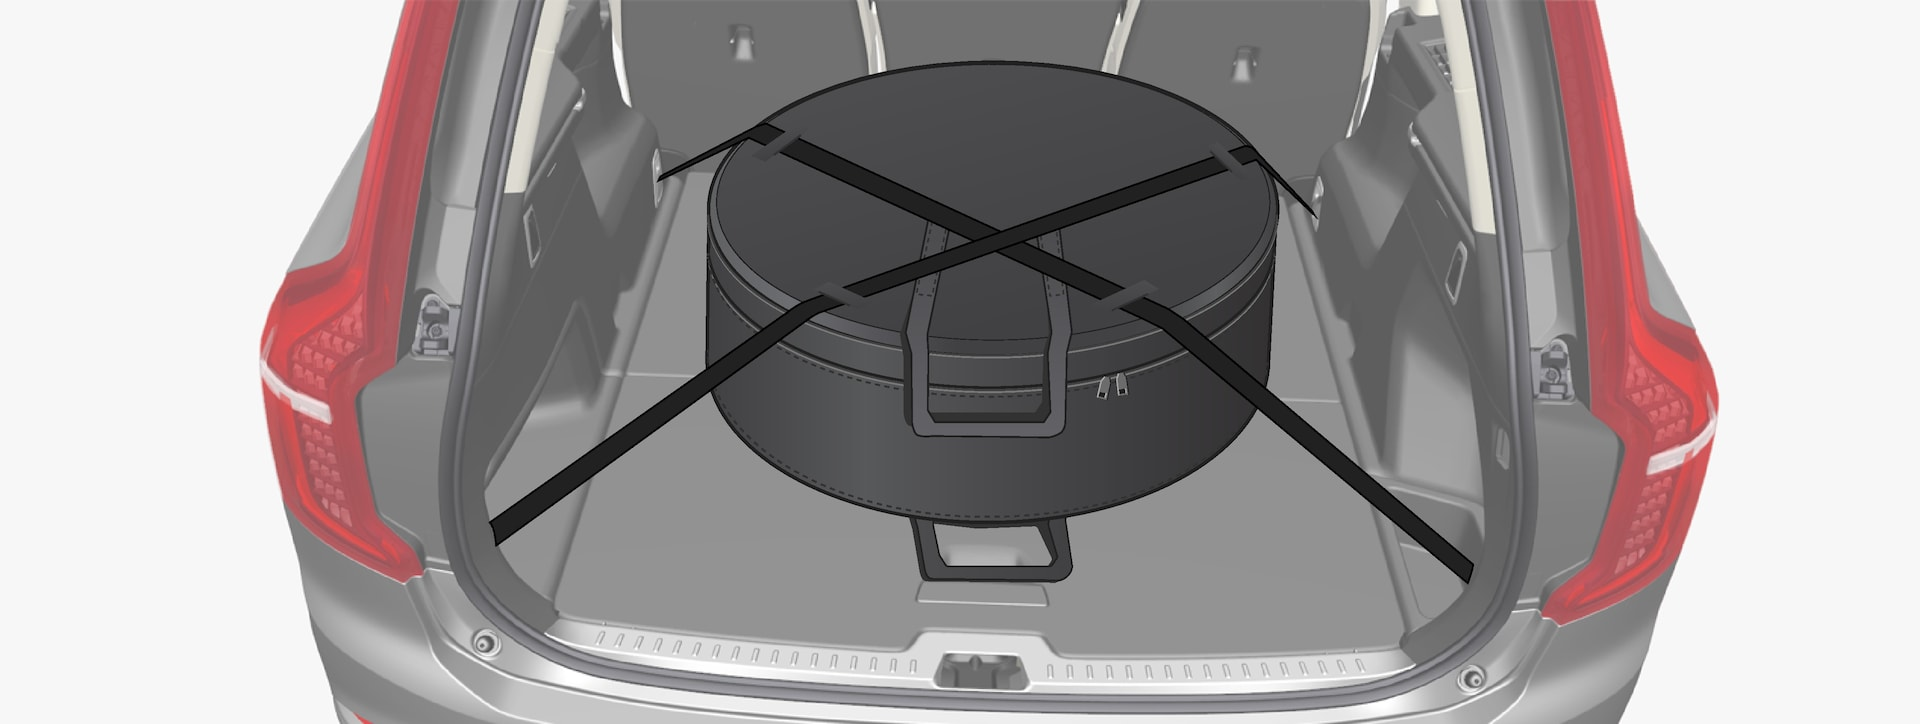 P5-1519-XC90 hybrid-Spare wheel in cargo area